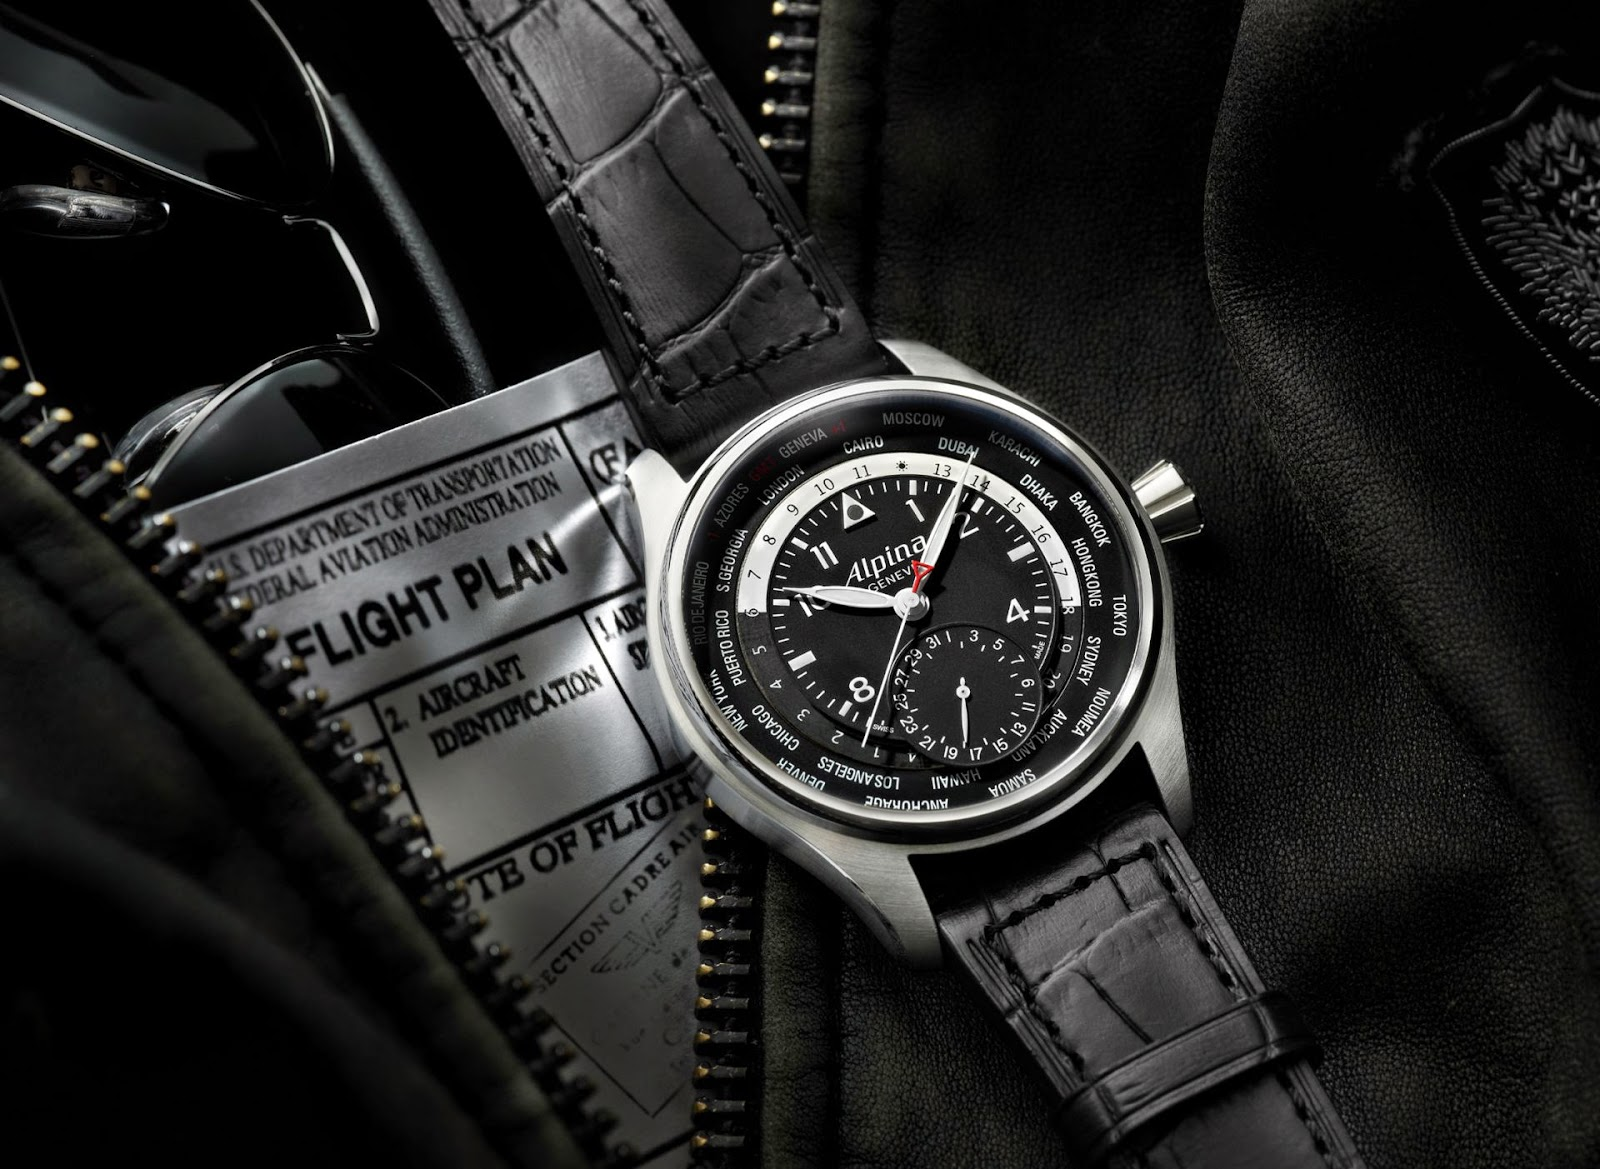 Alpina Worldtimer Manufacture Limited edition watch in collaboration with Cessna Aircraft and PrivatAir